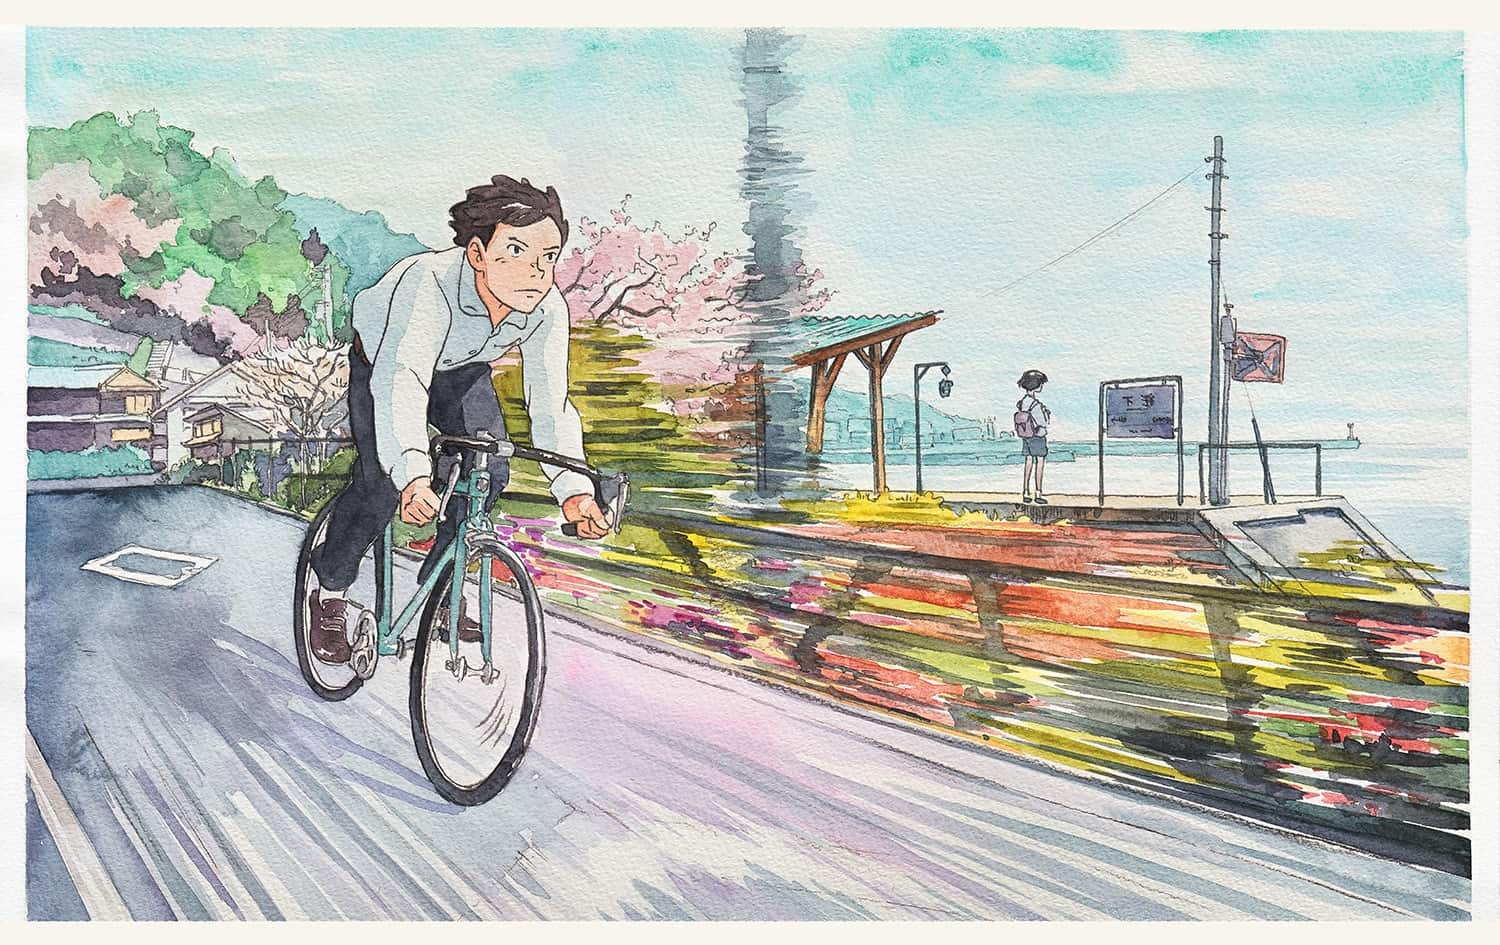 Polish animator and illustrator creates beautiful watercolour please introduce yourself and what you do publicscrutiny Images